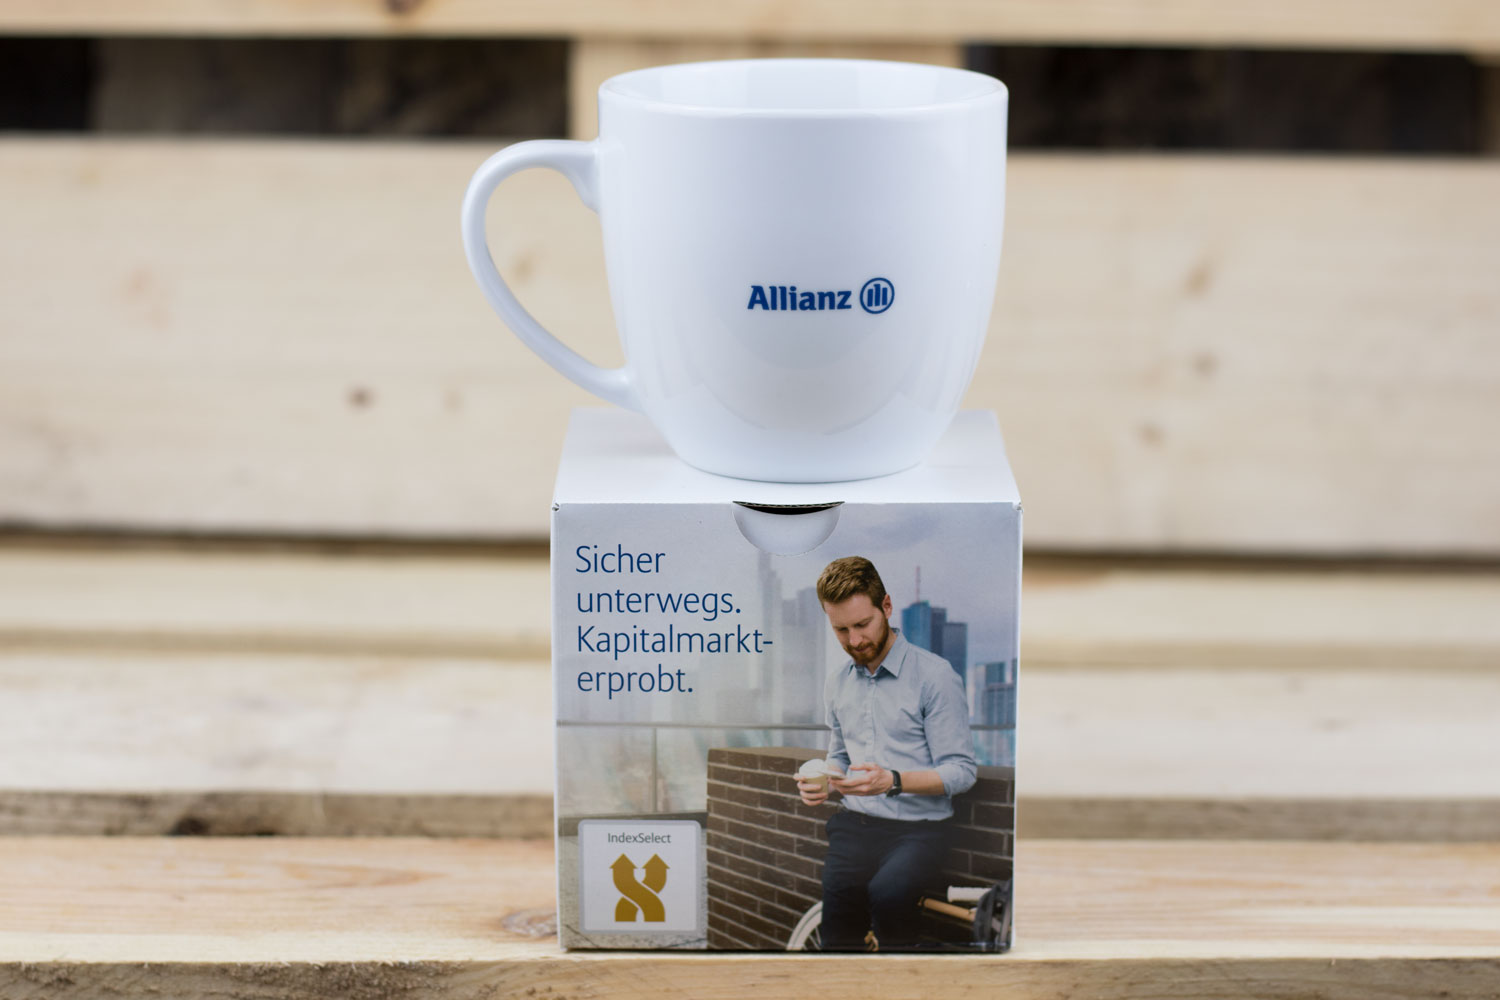 GR36 Allianz Tasse Referenz 3